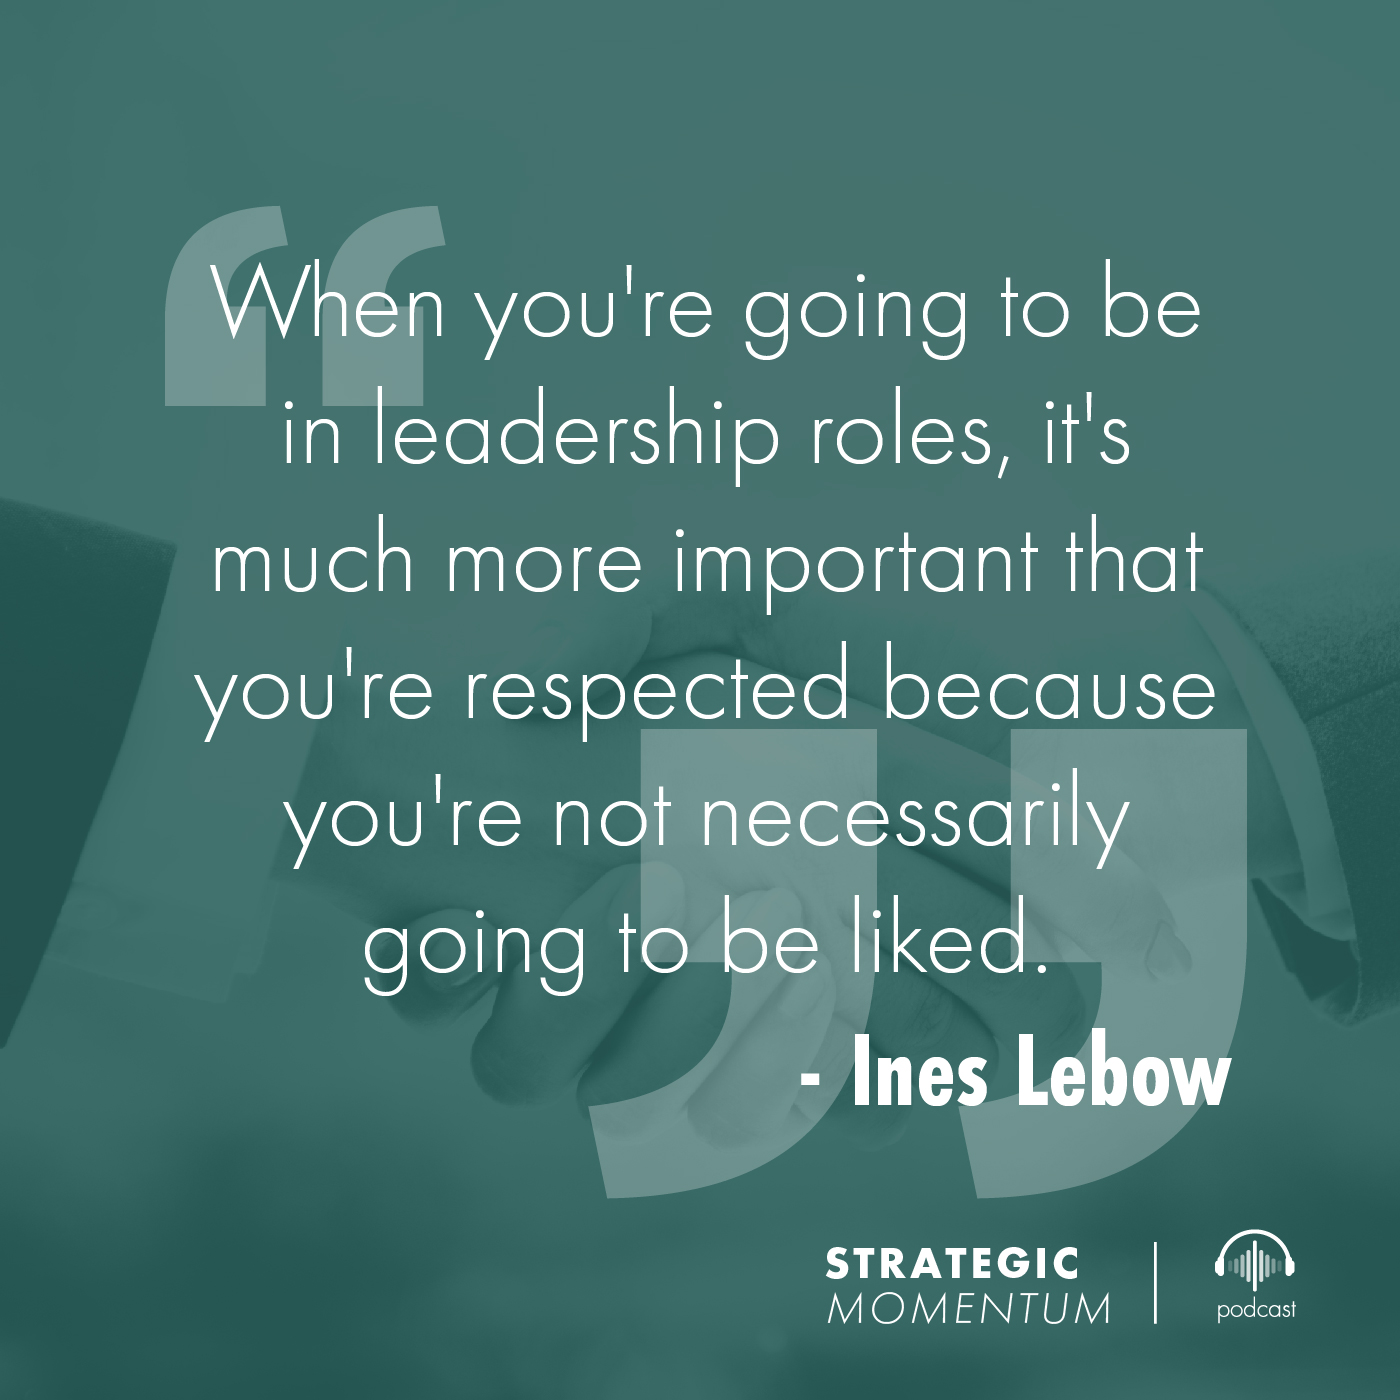 Ines Lebow Quote | Strategic Momentum Podcast